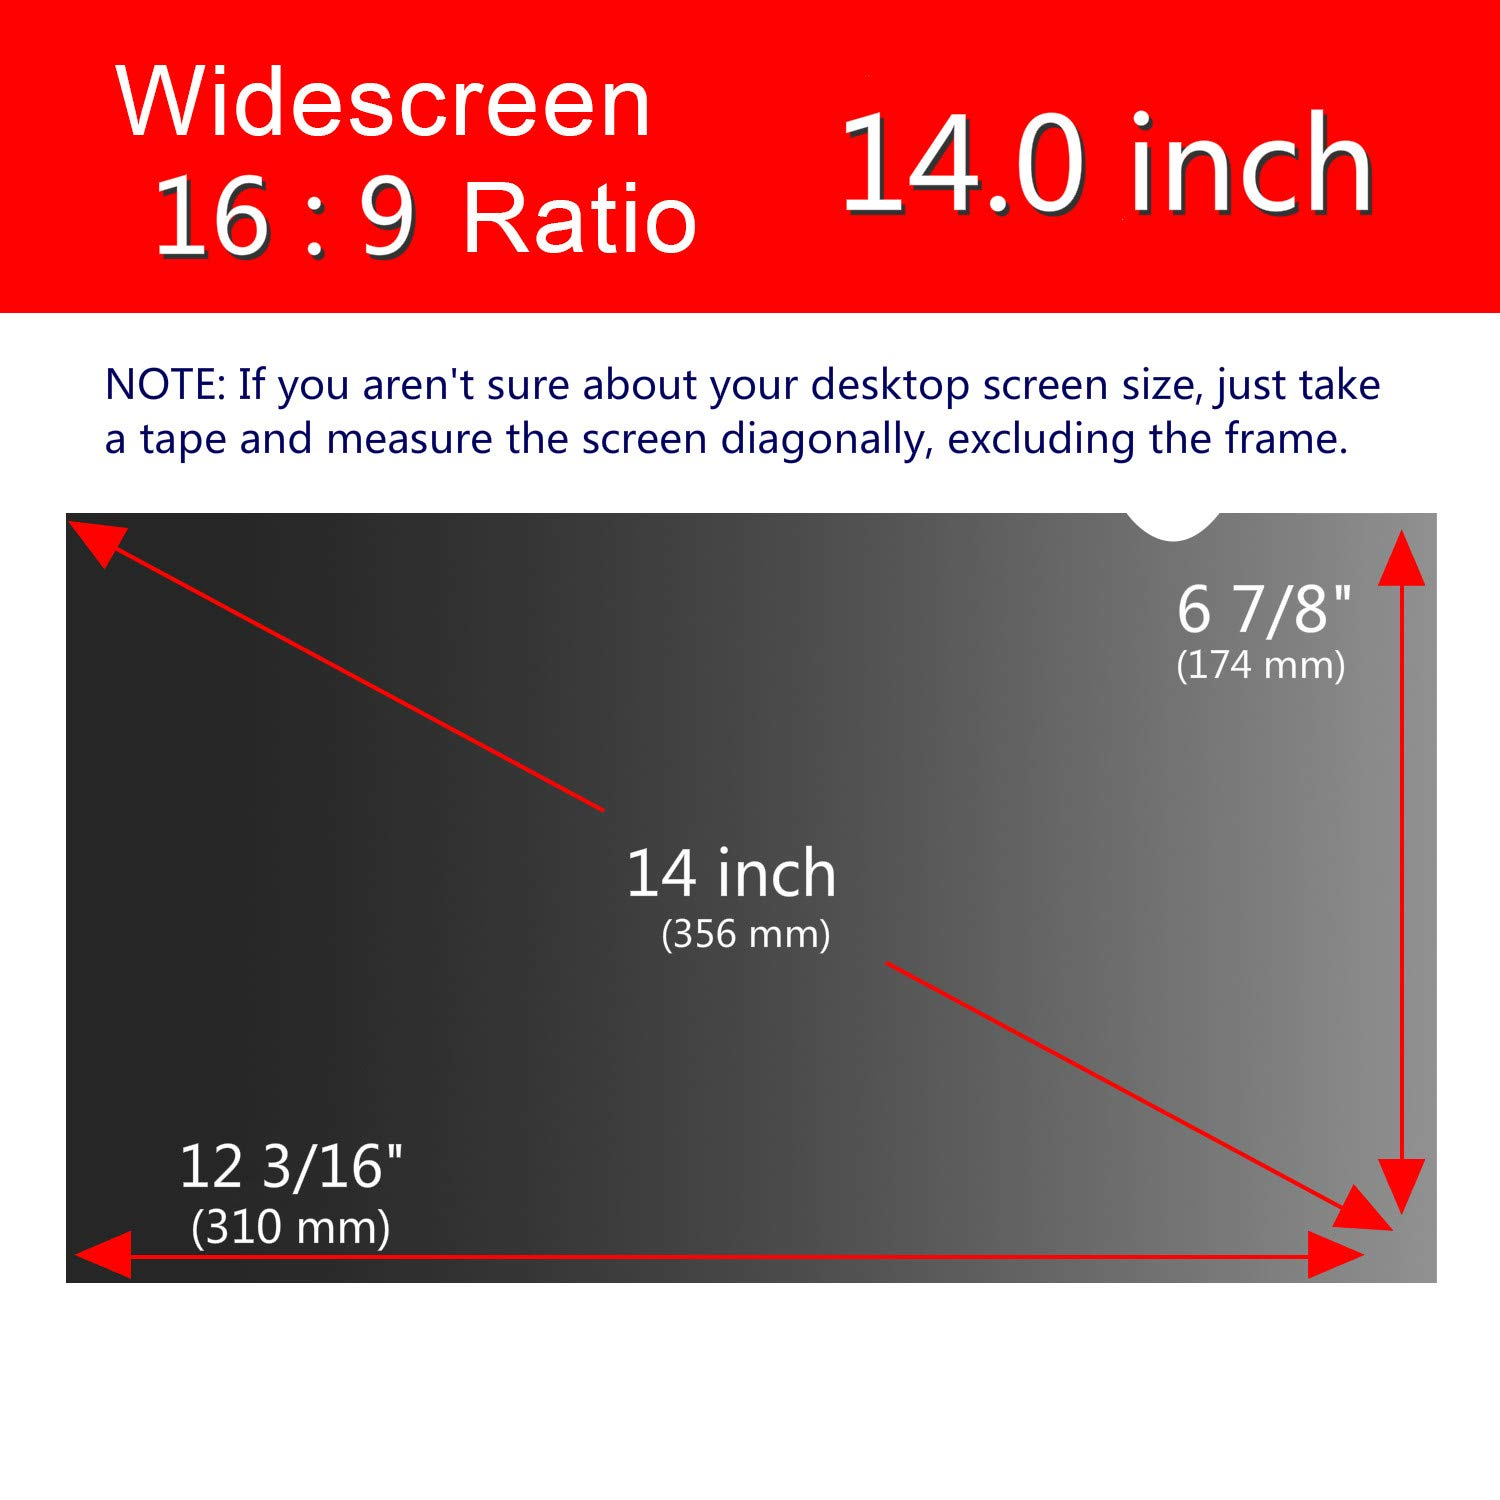 Magicmoon Privacy Filter Screen Protector, Anti-Spy&Glare Film for 14 inch Widescreen Notebook Laptop (14'', 16:9 Aspect Ratio) by Magicmoon (Image #6)